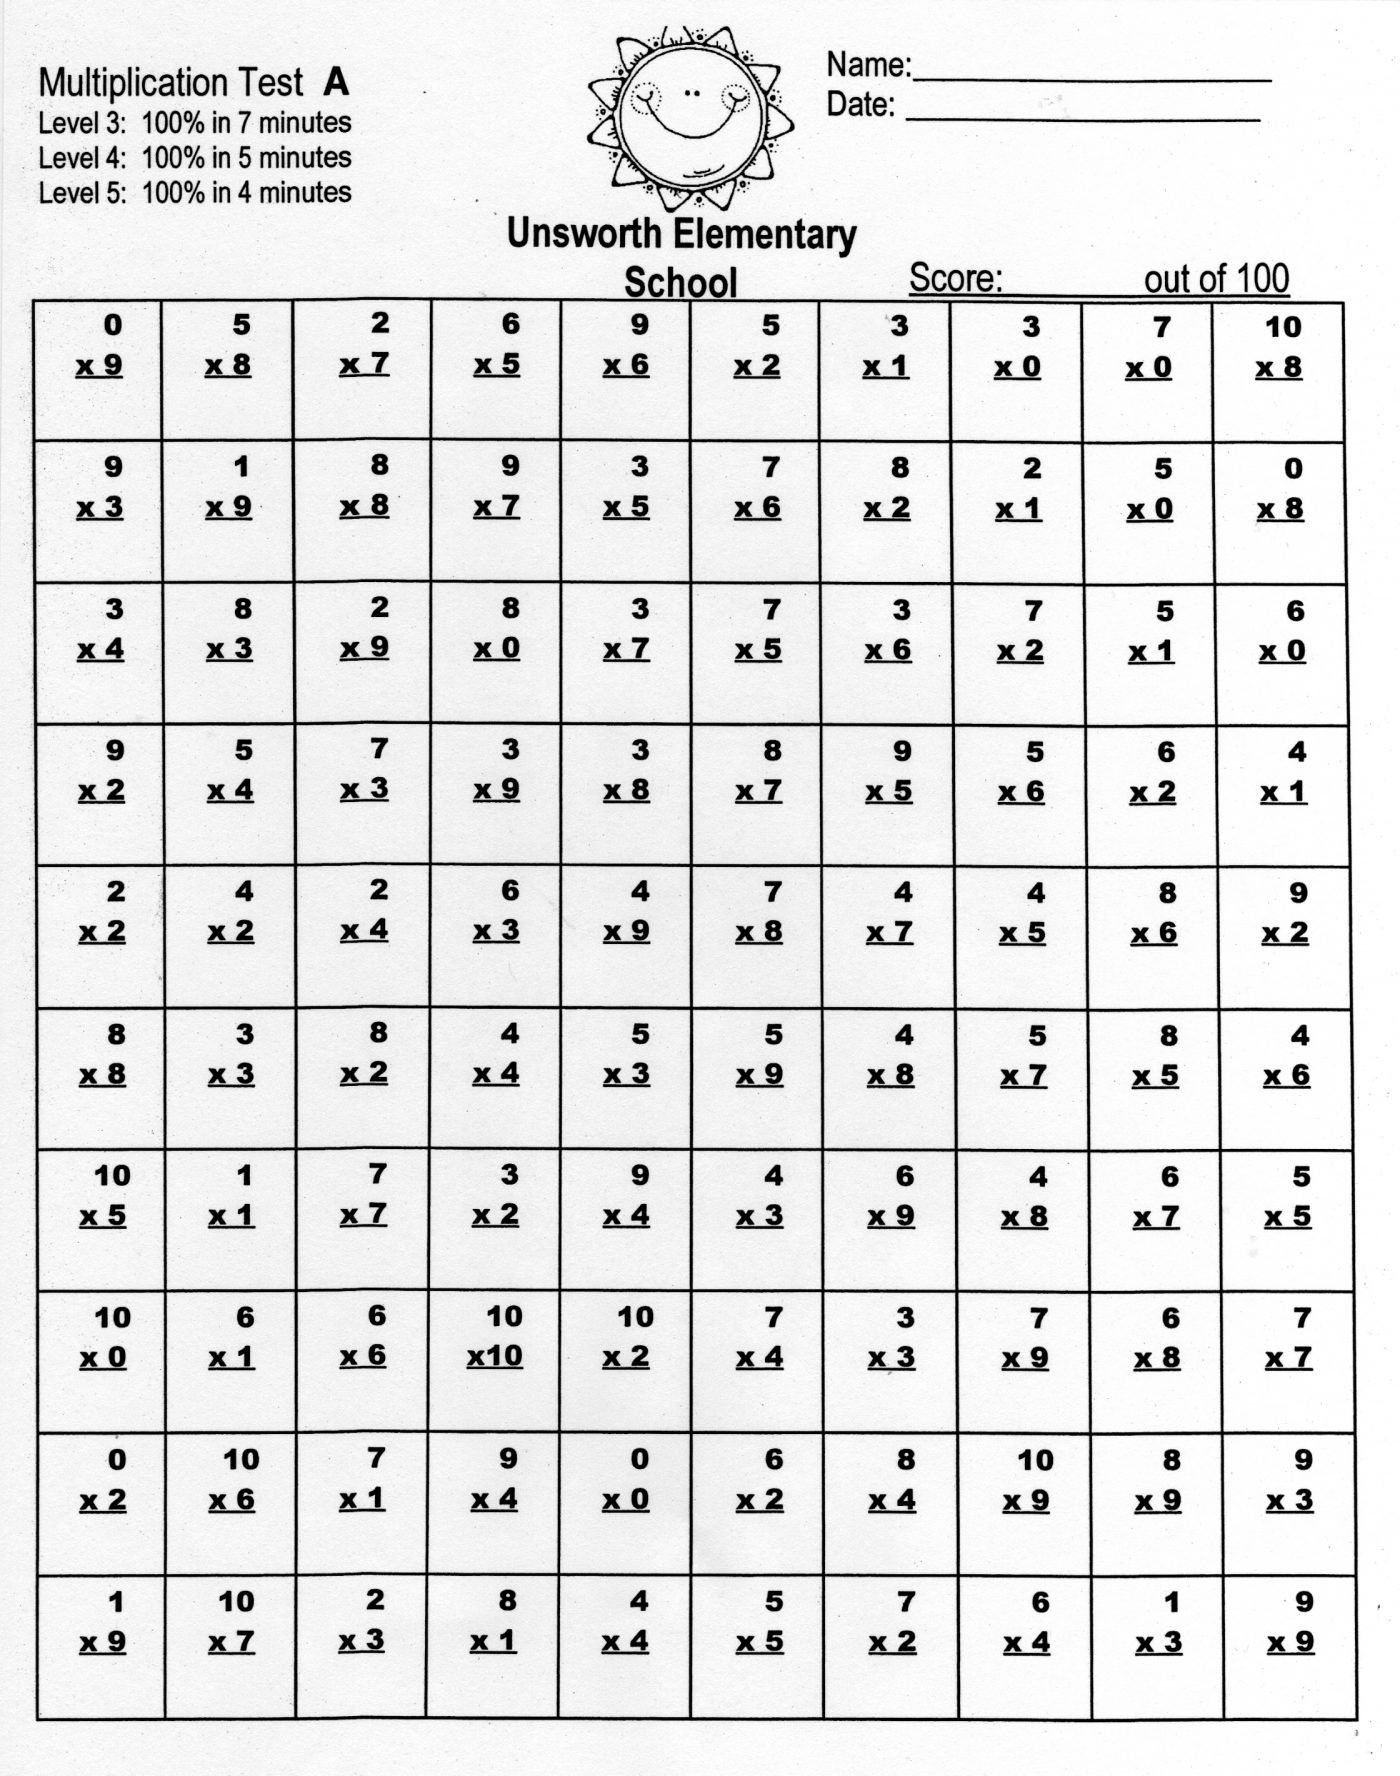 5 Free Math Worksheets Second Grade 2 Addition Add 3 3